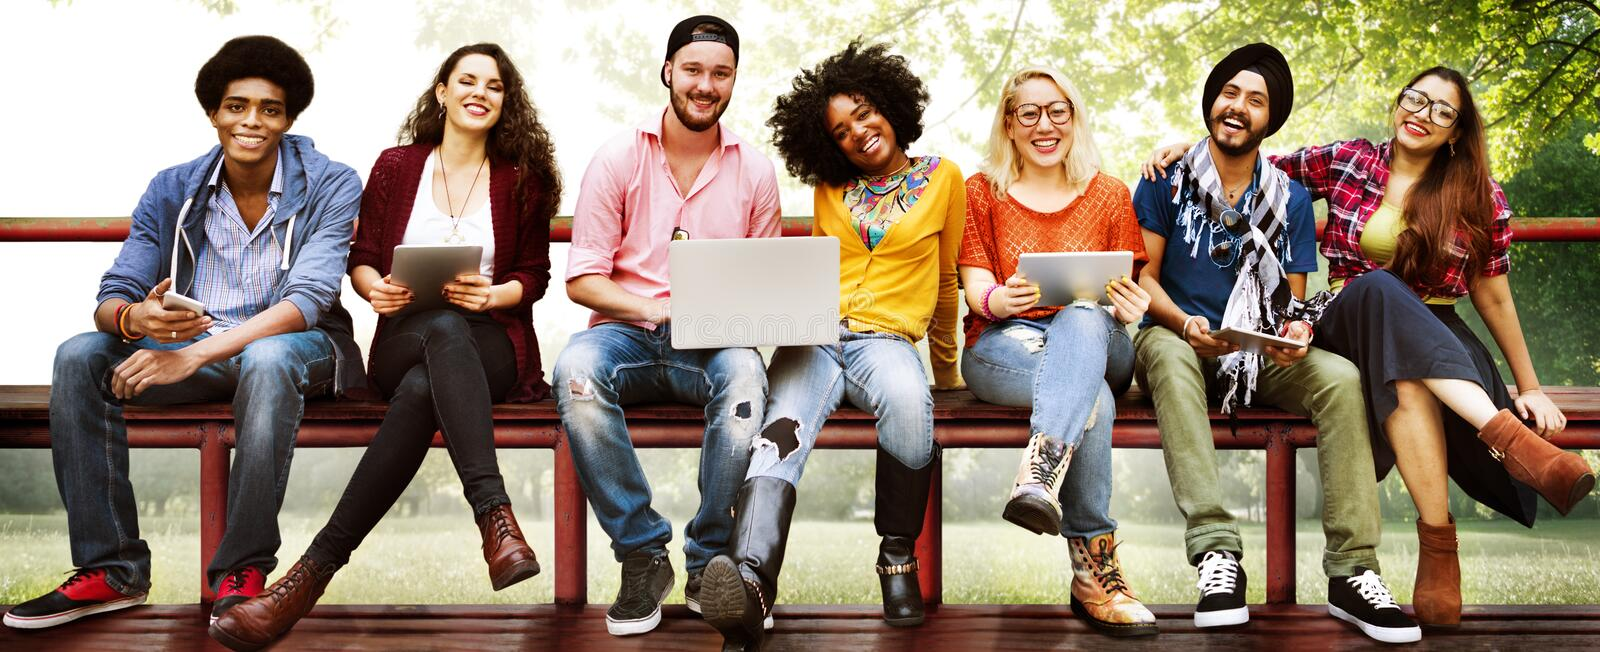 Youth Friends Friendship Technology Together Concept royalty free stock photo